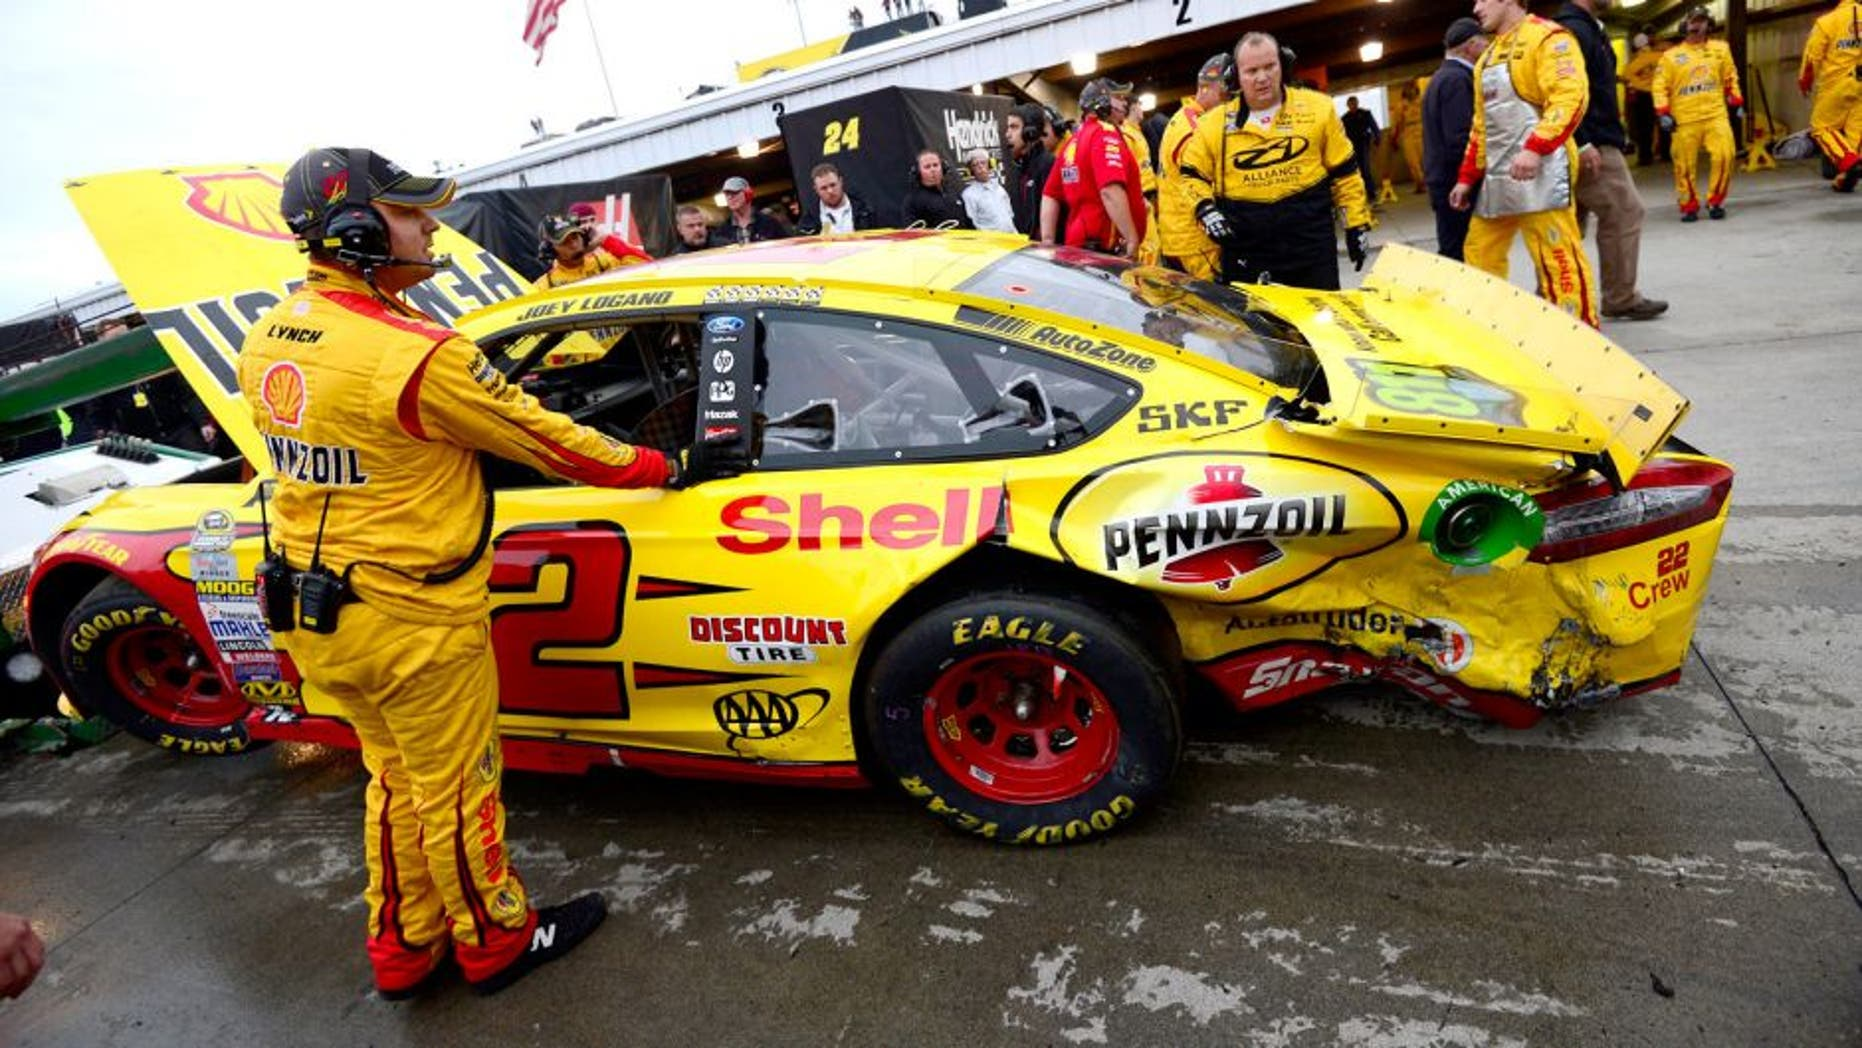 MARTINSVILLE, VA - NOVEMBER 01: The #22 Shell Pennzoil Ford of Joey Logano is towed into the garage area after an incident with Matt Kenseth, driver of the #20 Dollar General Toyota, during the NASCAR Sprint Cup Series Goody's Headache Relief Shot 500 at Martinsville Speedway on November 1, 2015 in Martinsville, Virginia. (Photo by Robert Laberge/Getty Images)